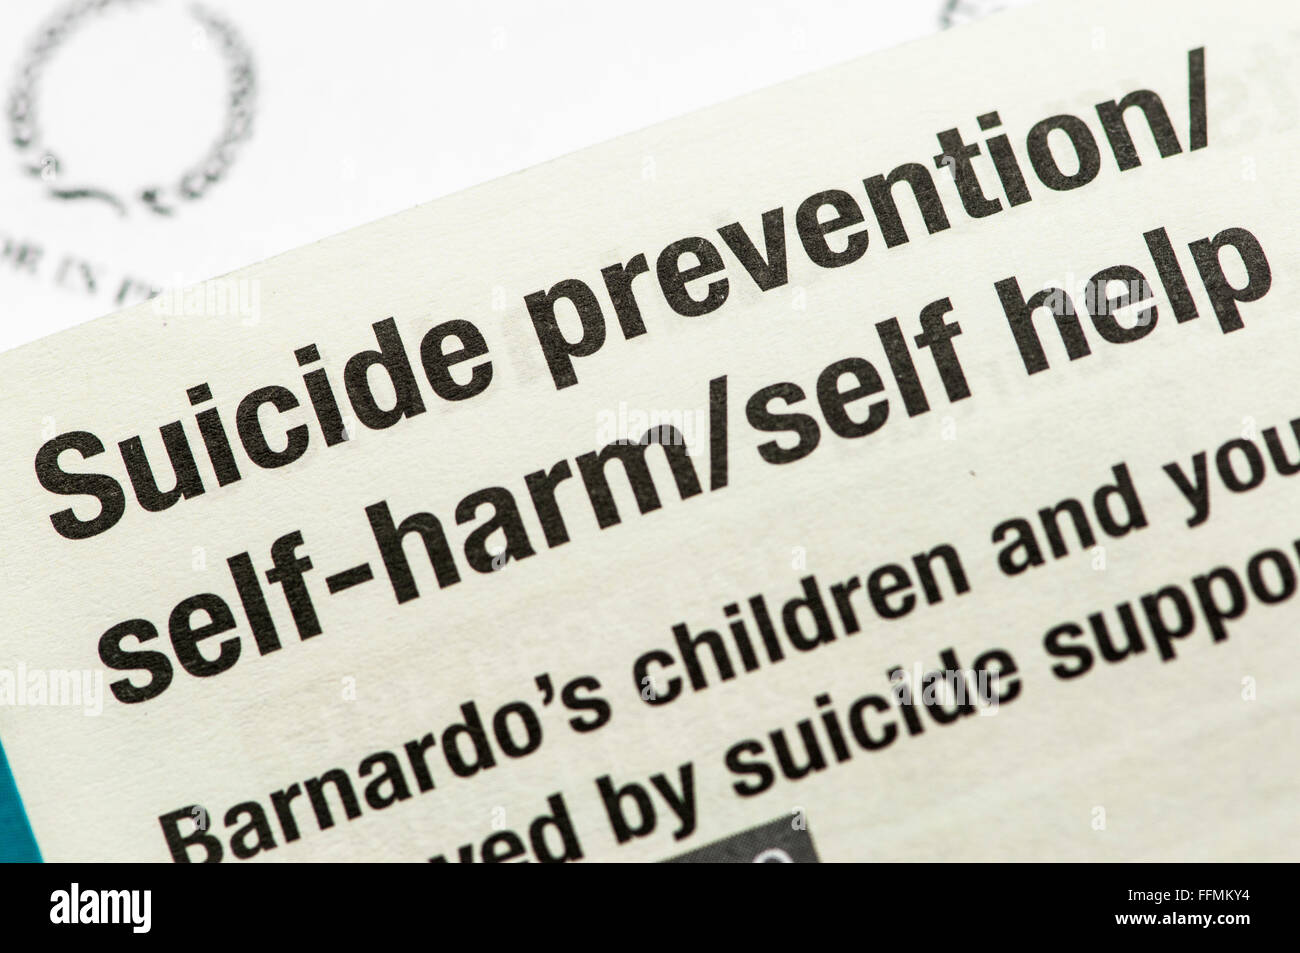 Directory of self-harm, suicide prevention and other Mental Health Services Stock Photo